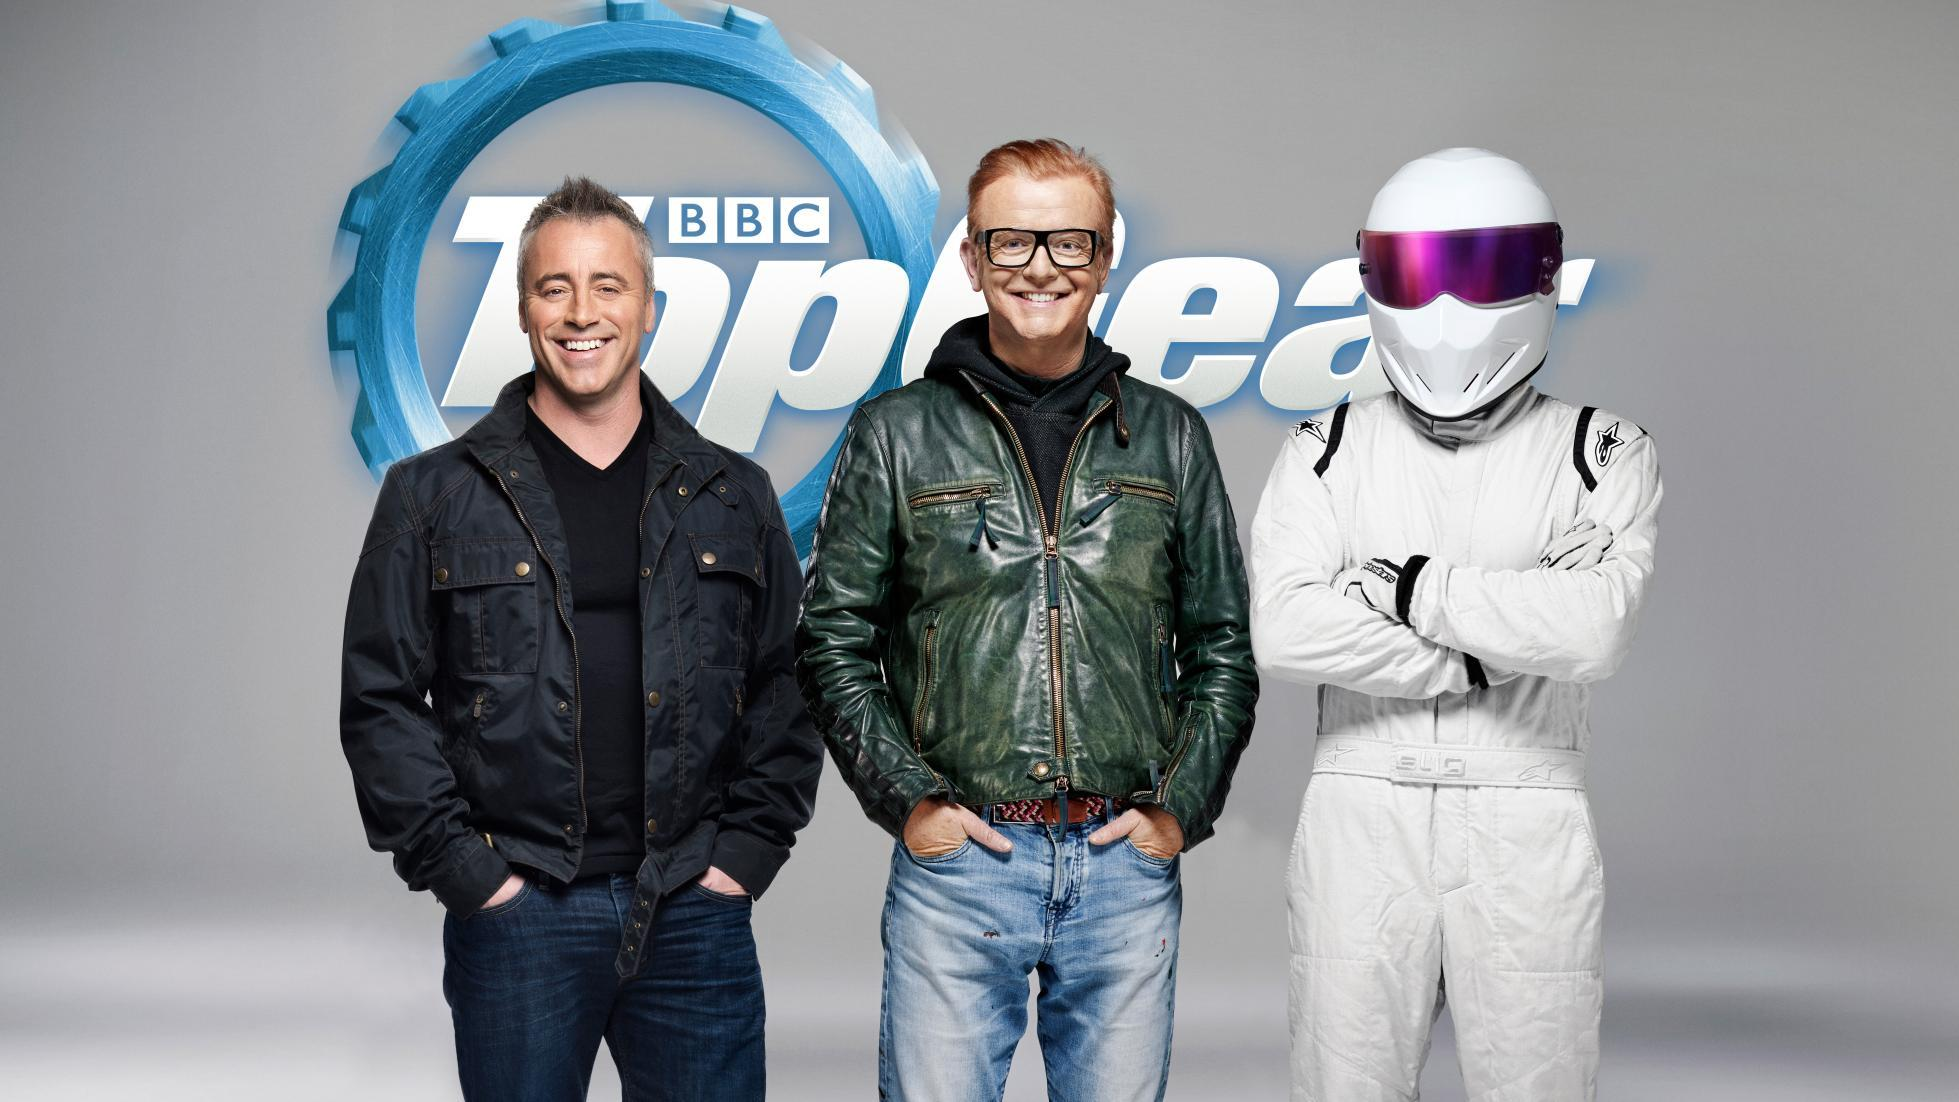 Matt LeBlanc joins Chris Evans and The Stig on Top Gear (BBC)